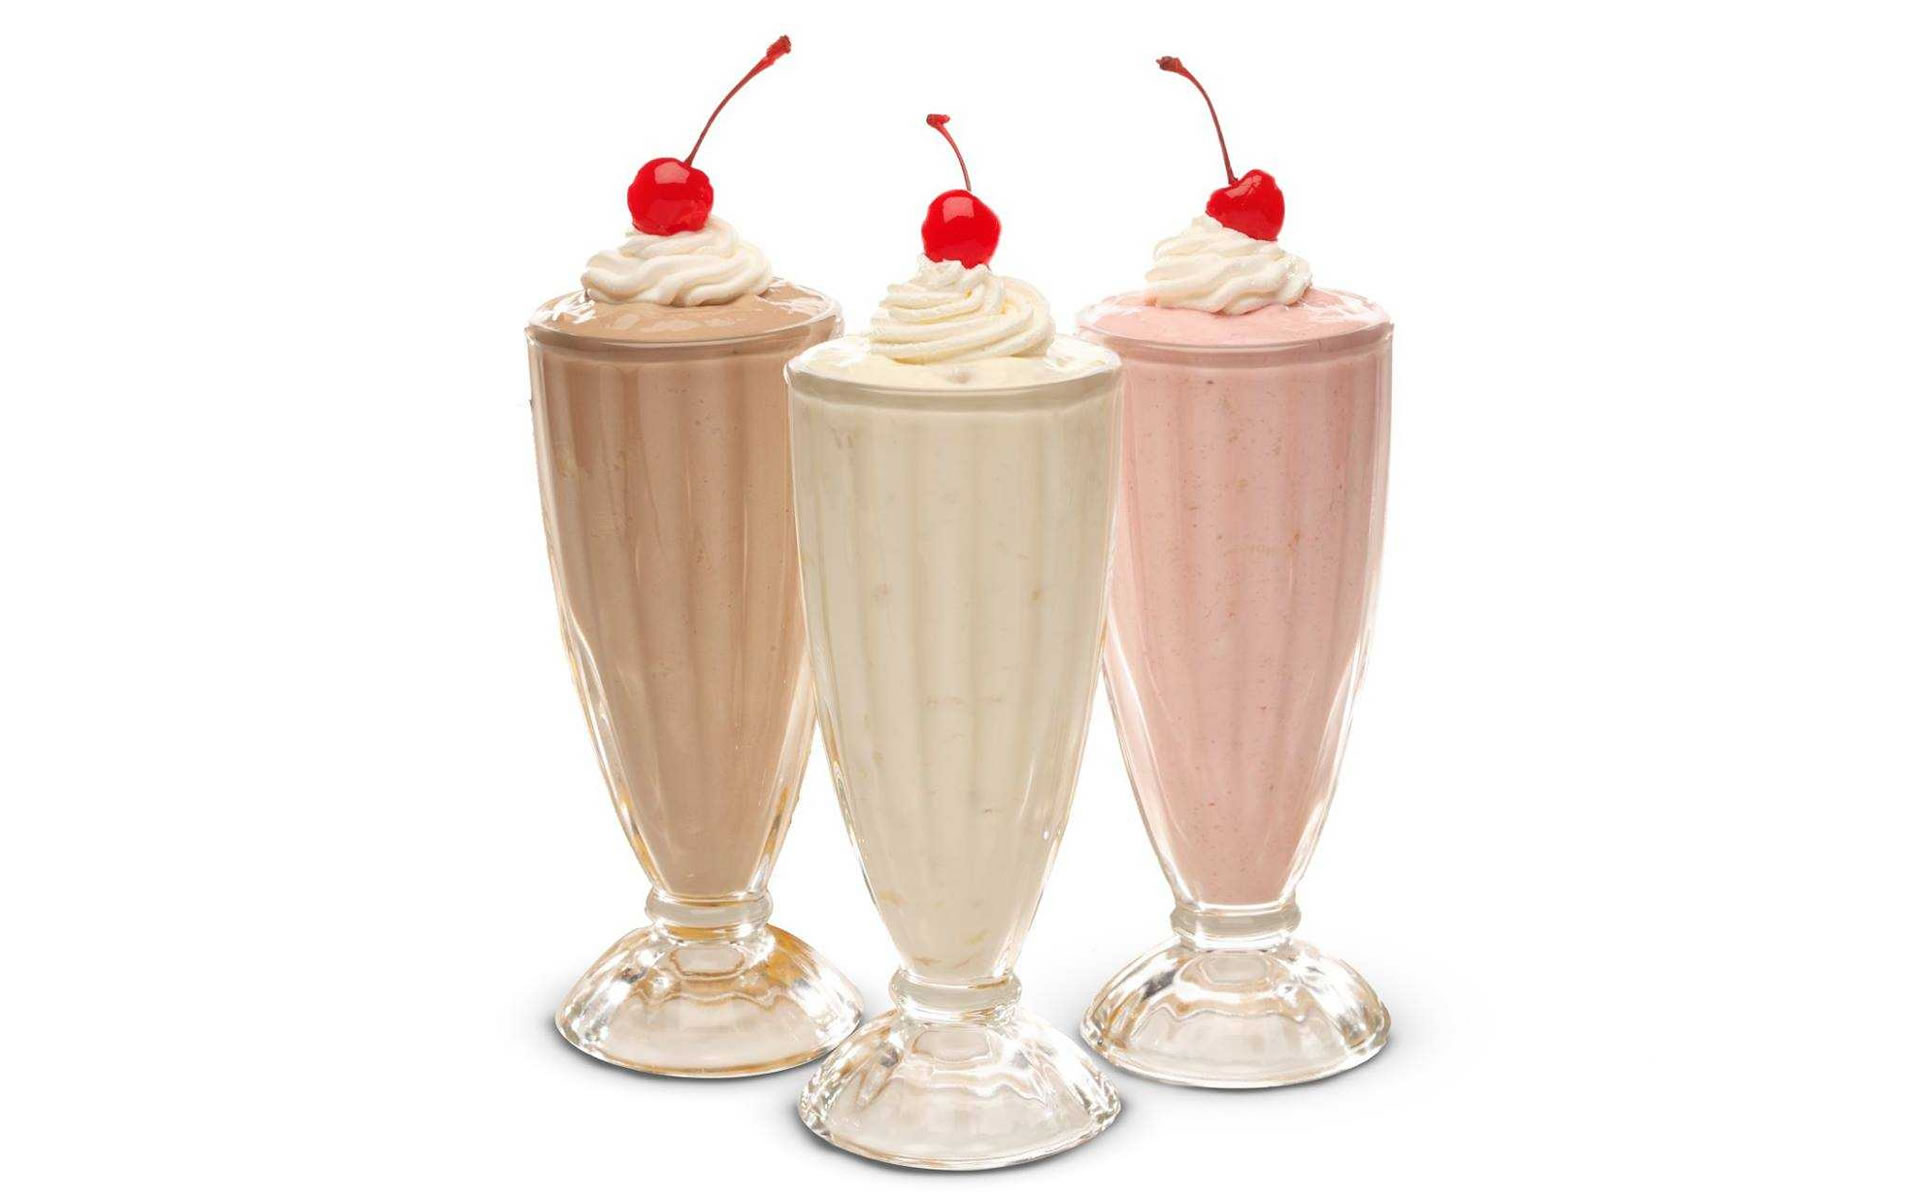 Milk Shakes - Vanilla, Strawberry & Chocolate